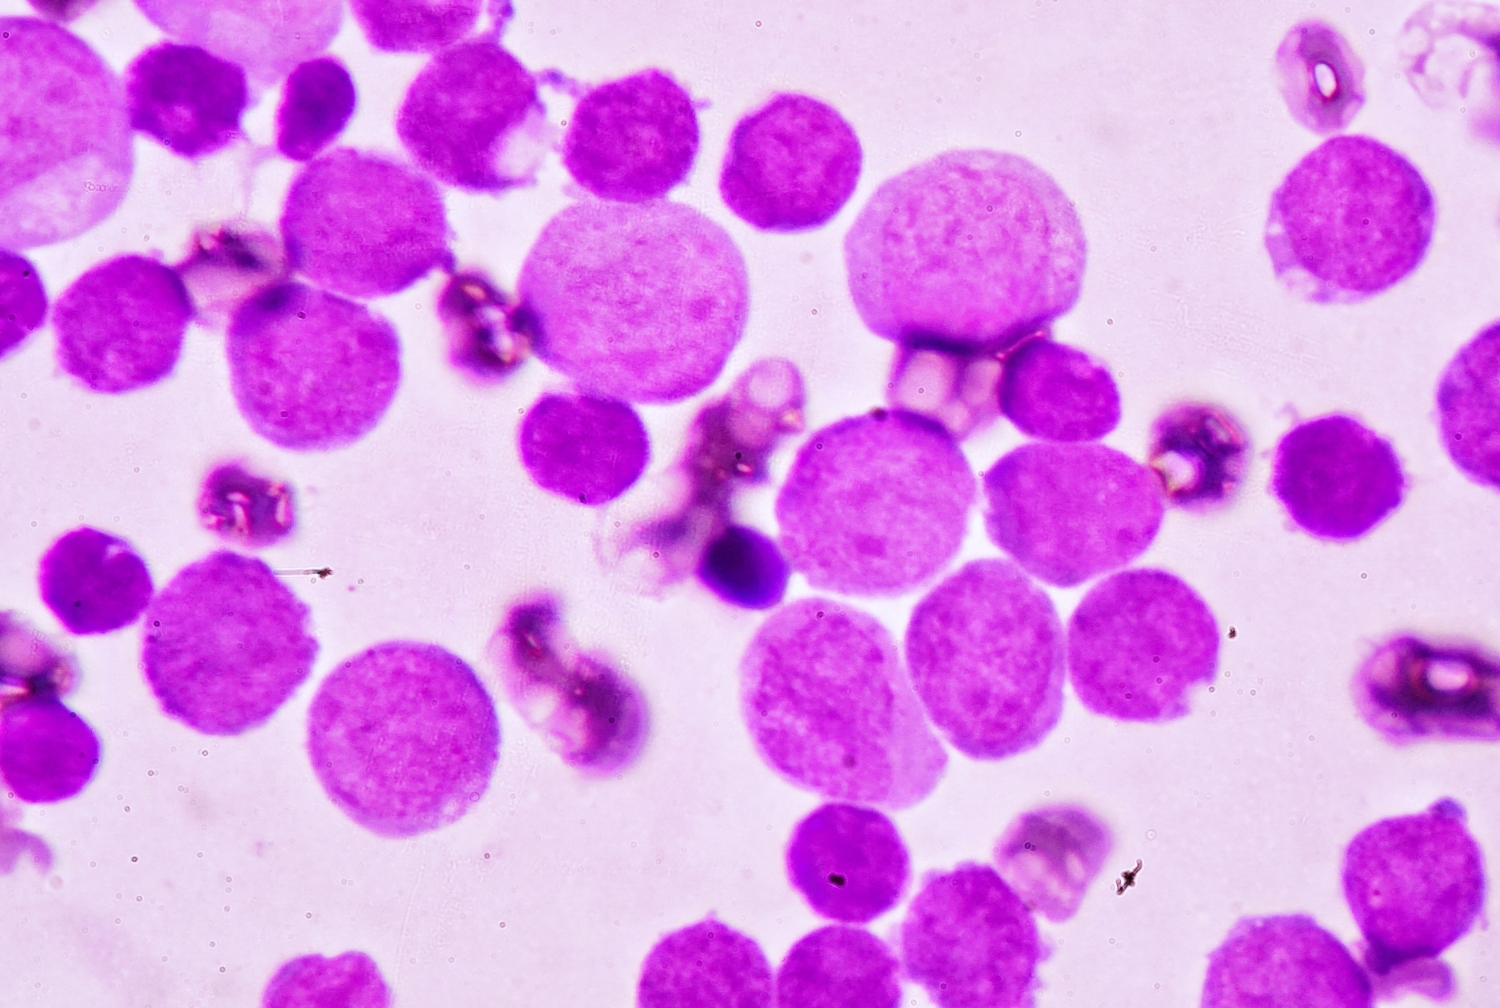 Blood smear under microscopy showing adult acute myeloid leukemia.